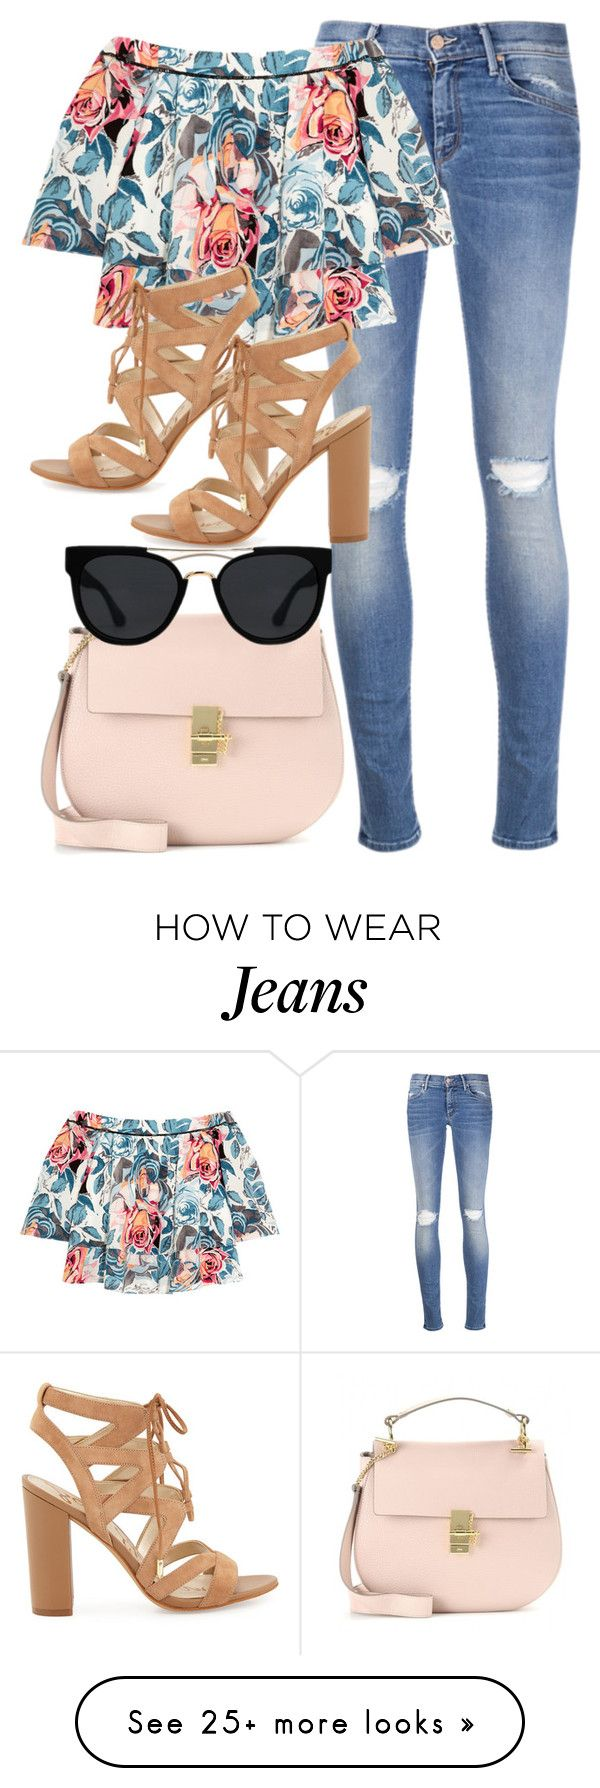 """""""265. Floral Top & Ripped Jeans Outfit"""" by kgarcia8427 on Polyvore featuring Mother, Elizabeth and James, Sam Edelman, Chloé and Quay"""